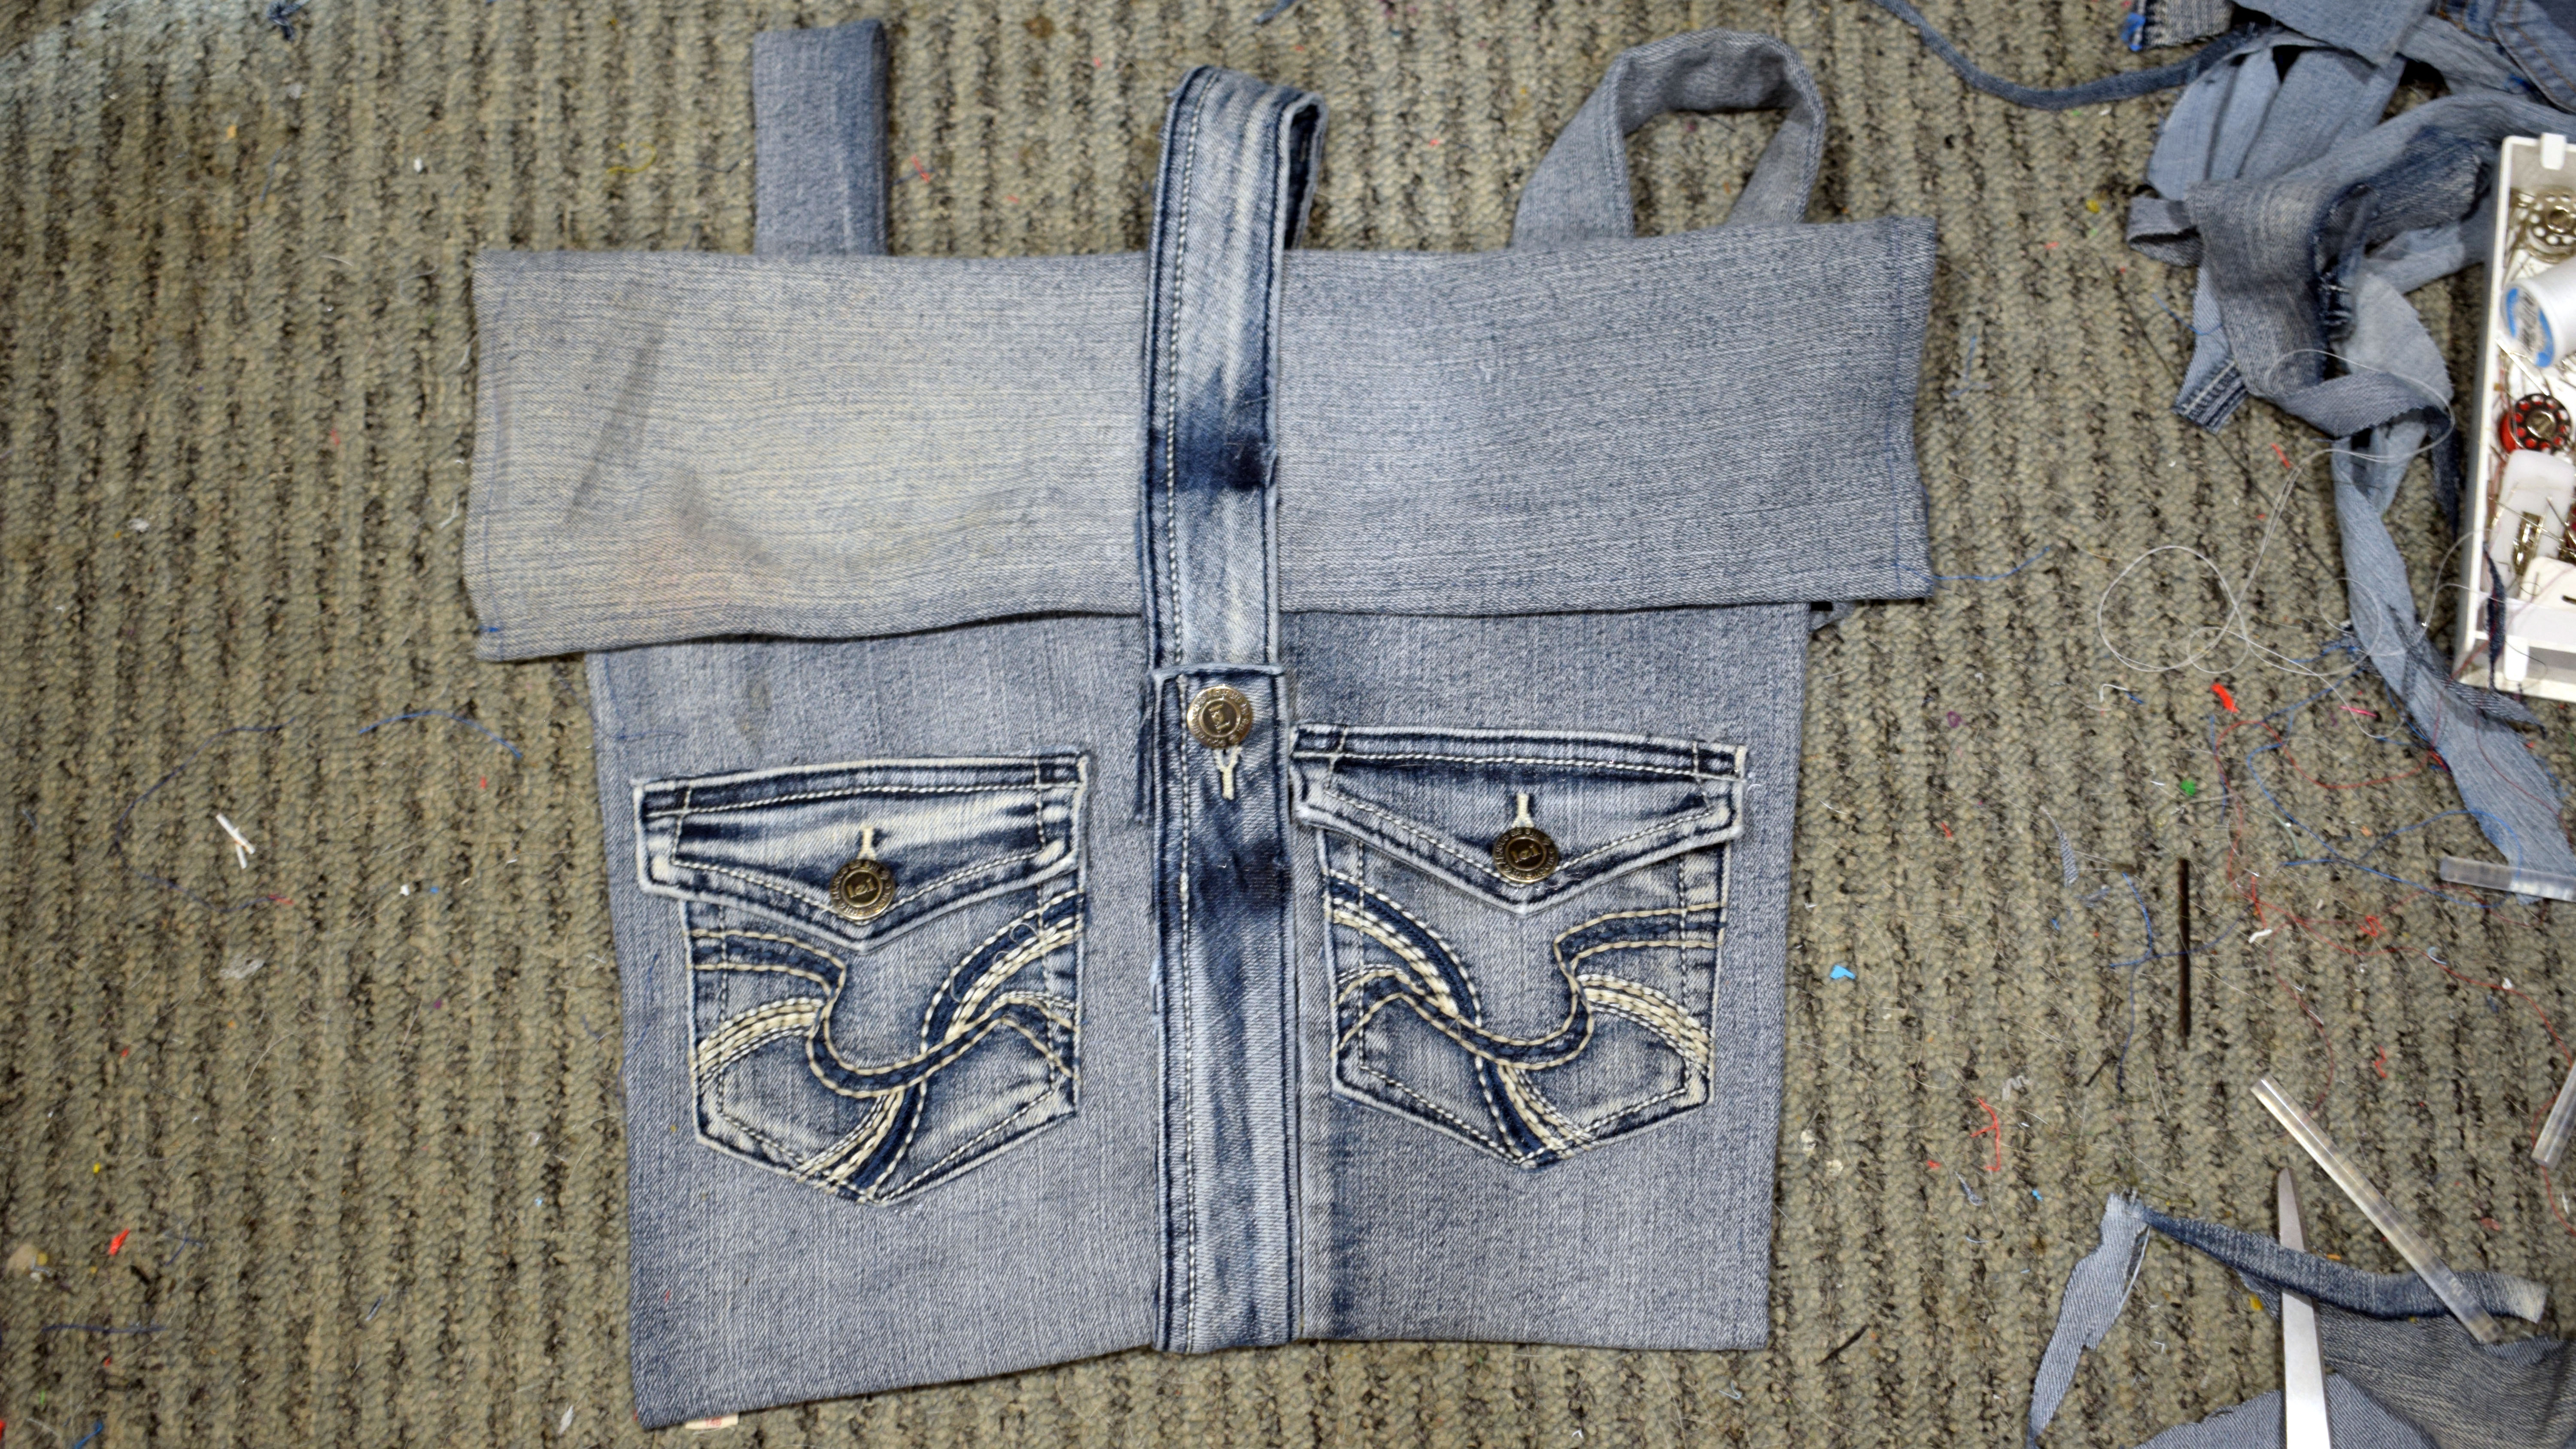 Picture of Attaching Pockets